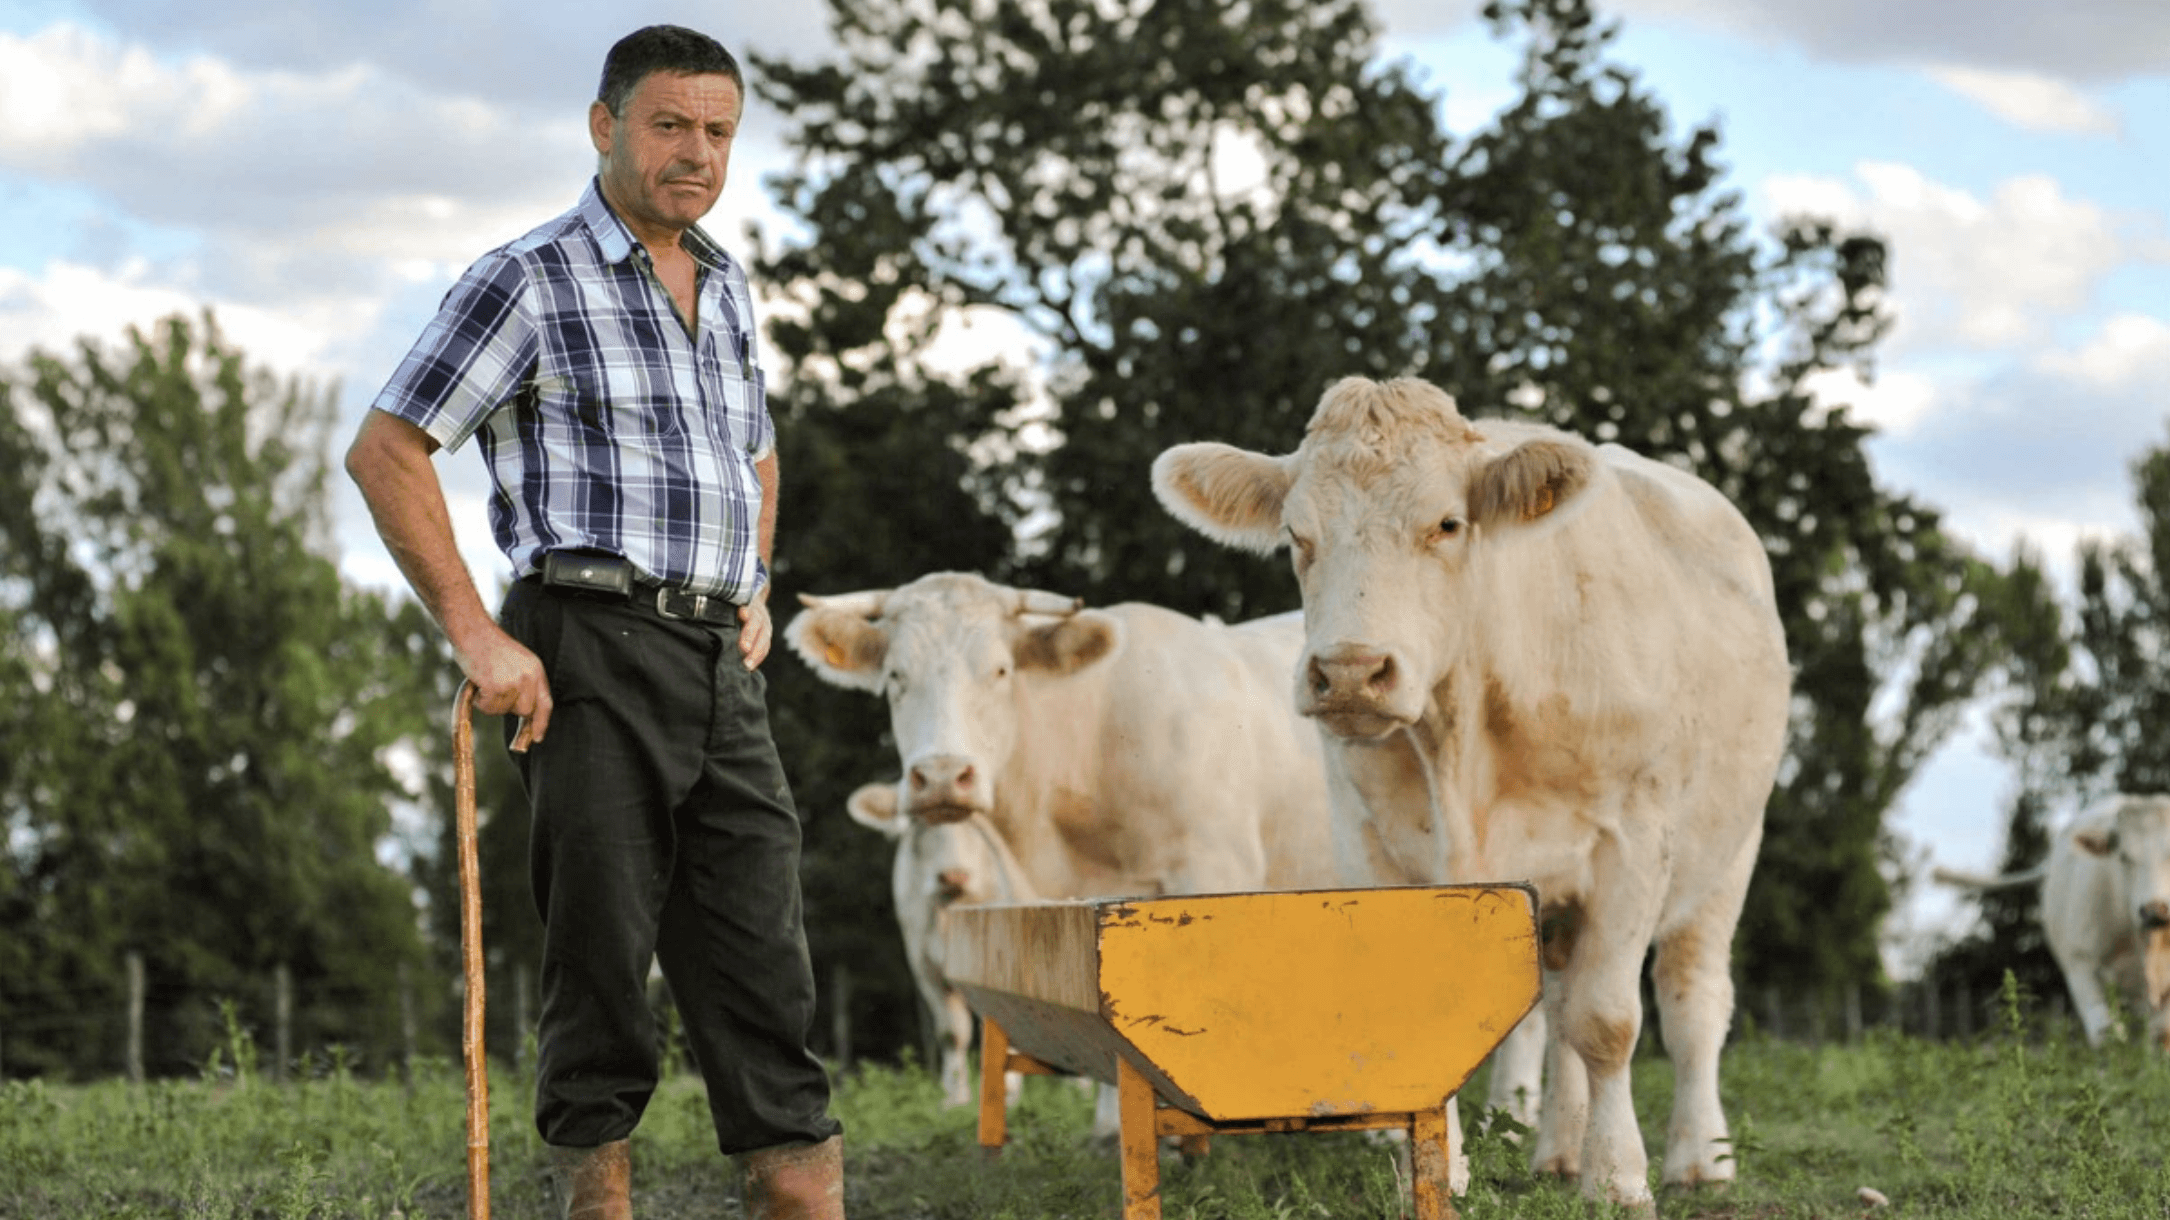 The Struggling Dairy Industry Is Losing One Farmer a Week